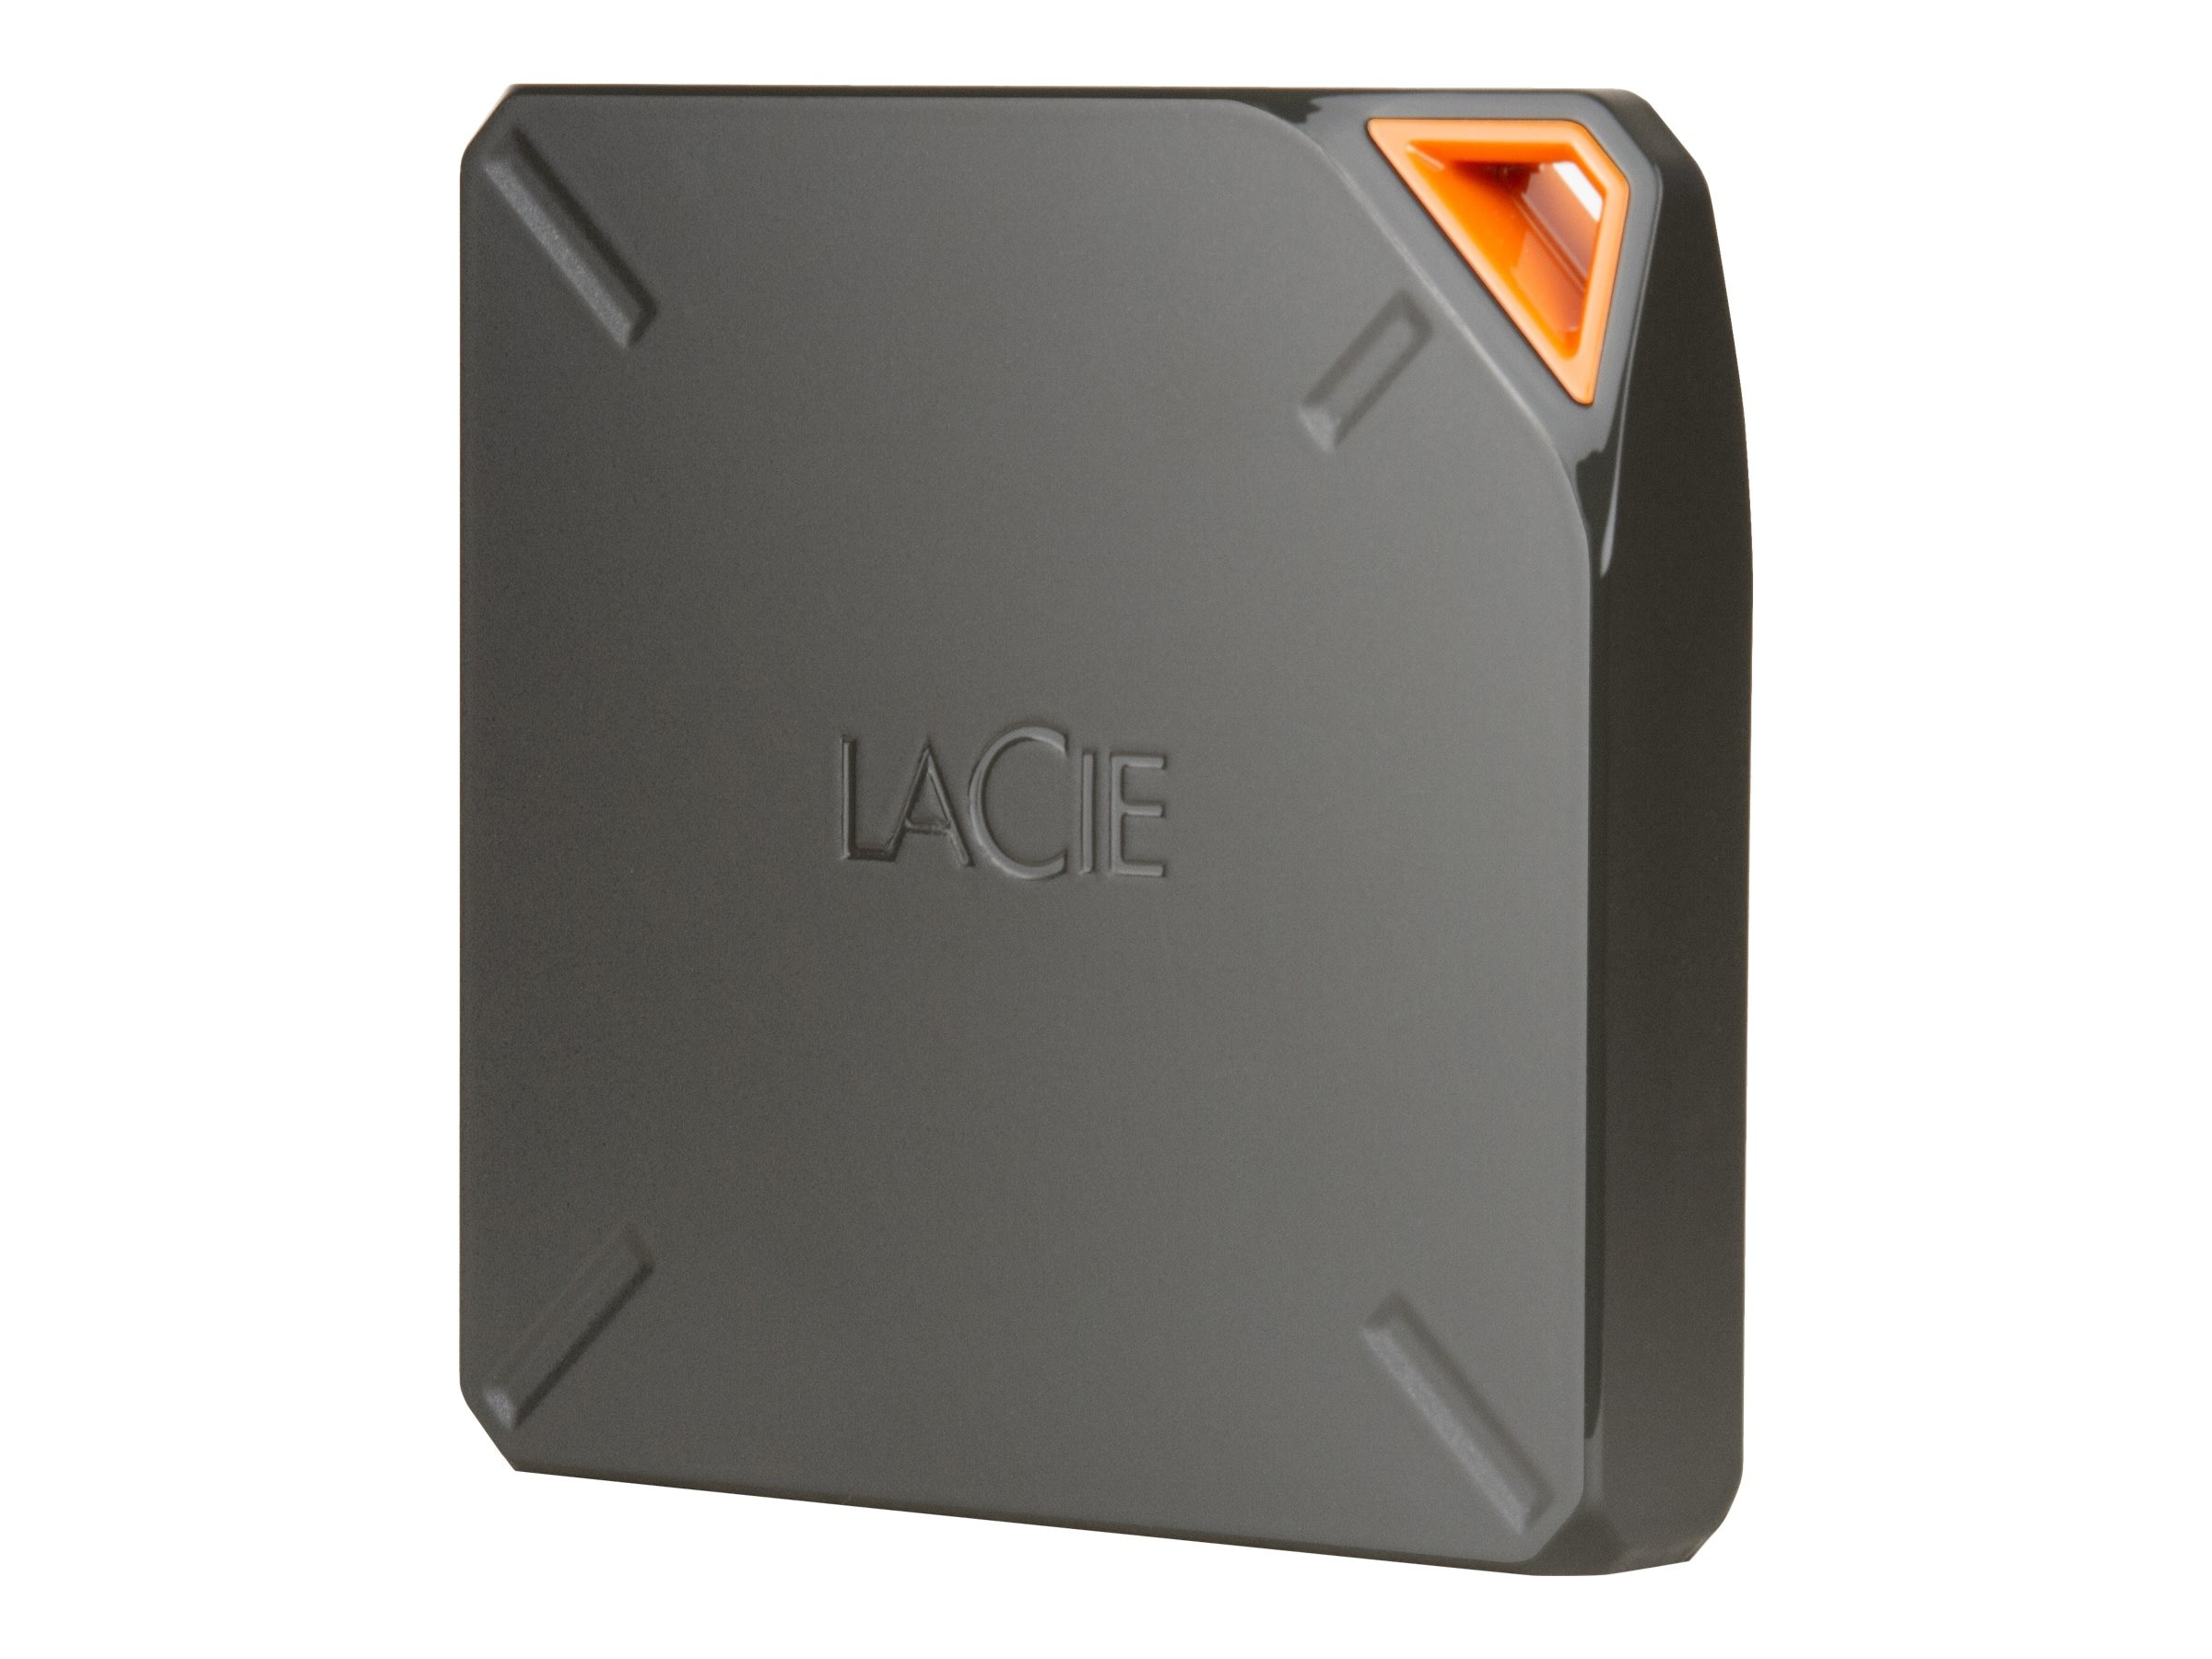 Lacie 2TB Fuel Wireless Storage, STFL2000100